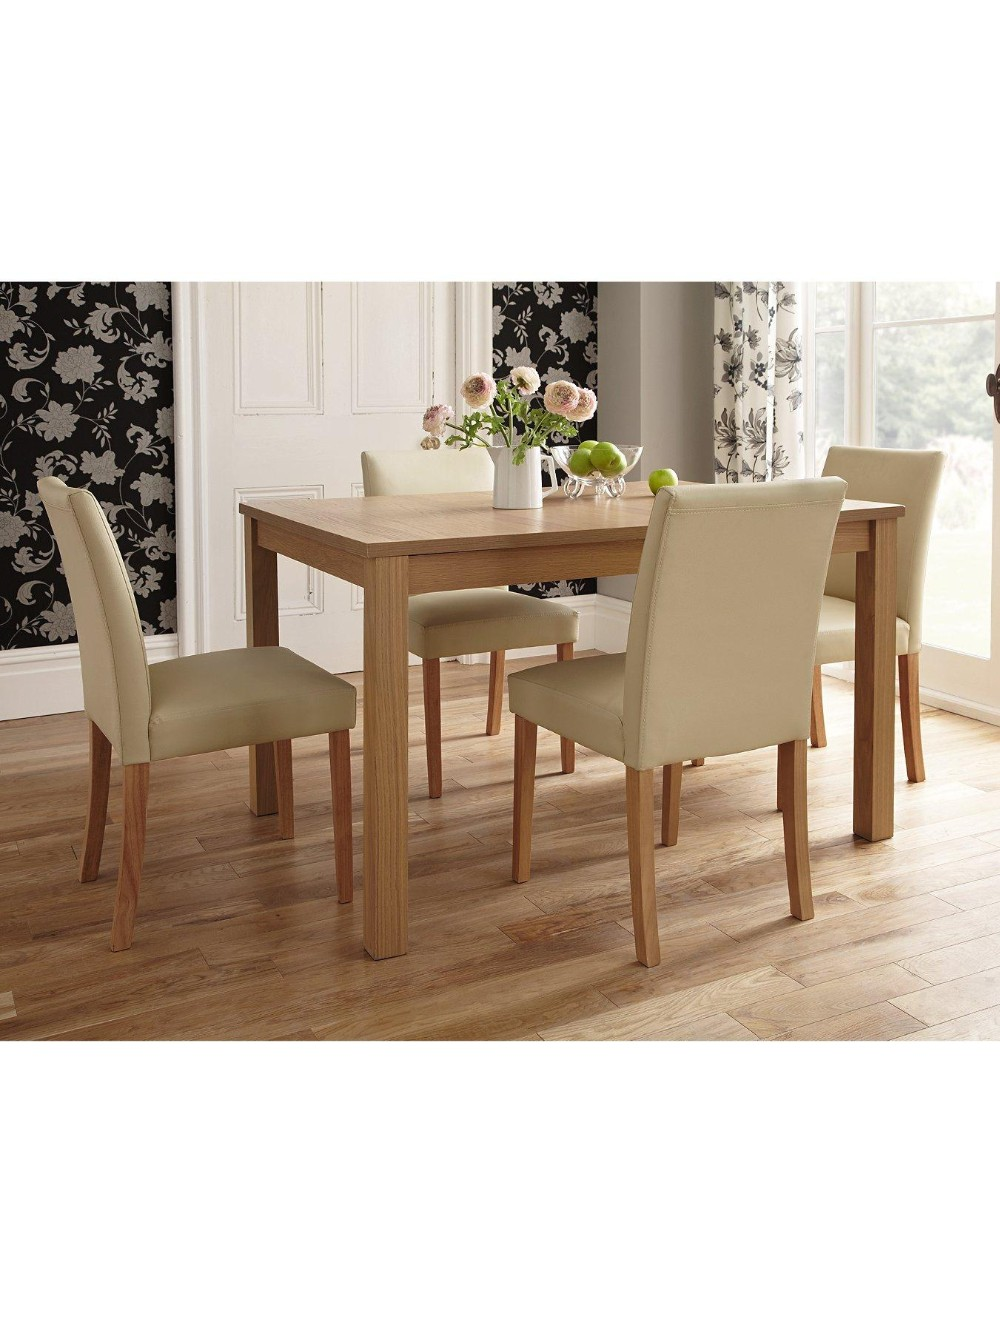 2015 hot sale factory price new design dining room